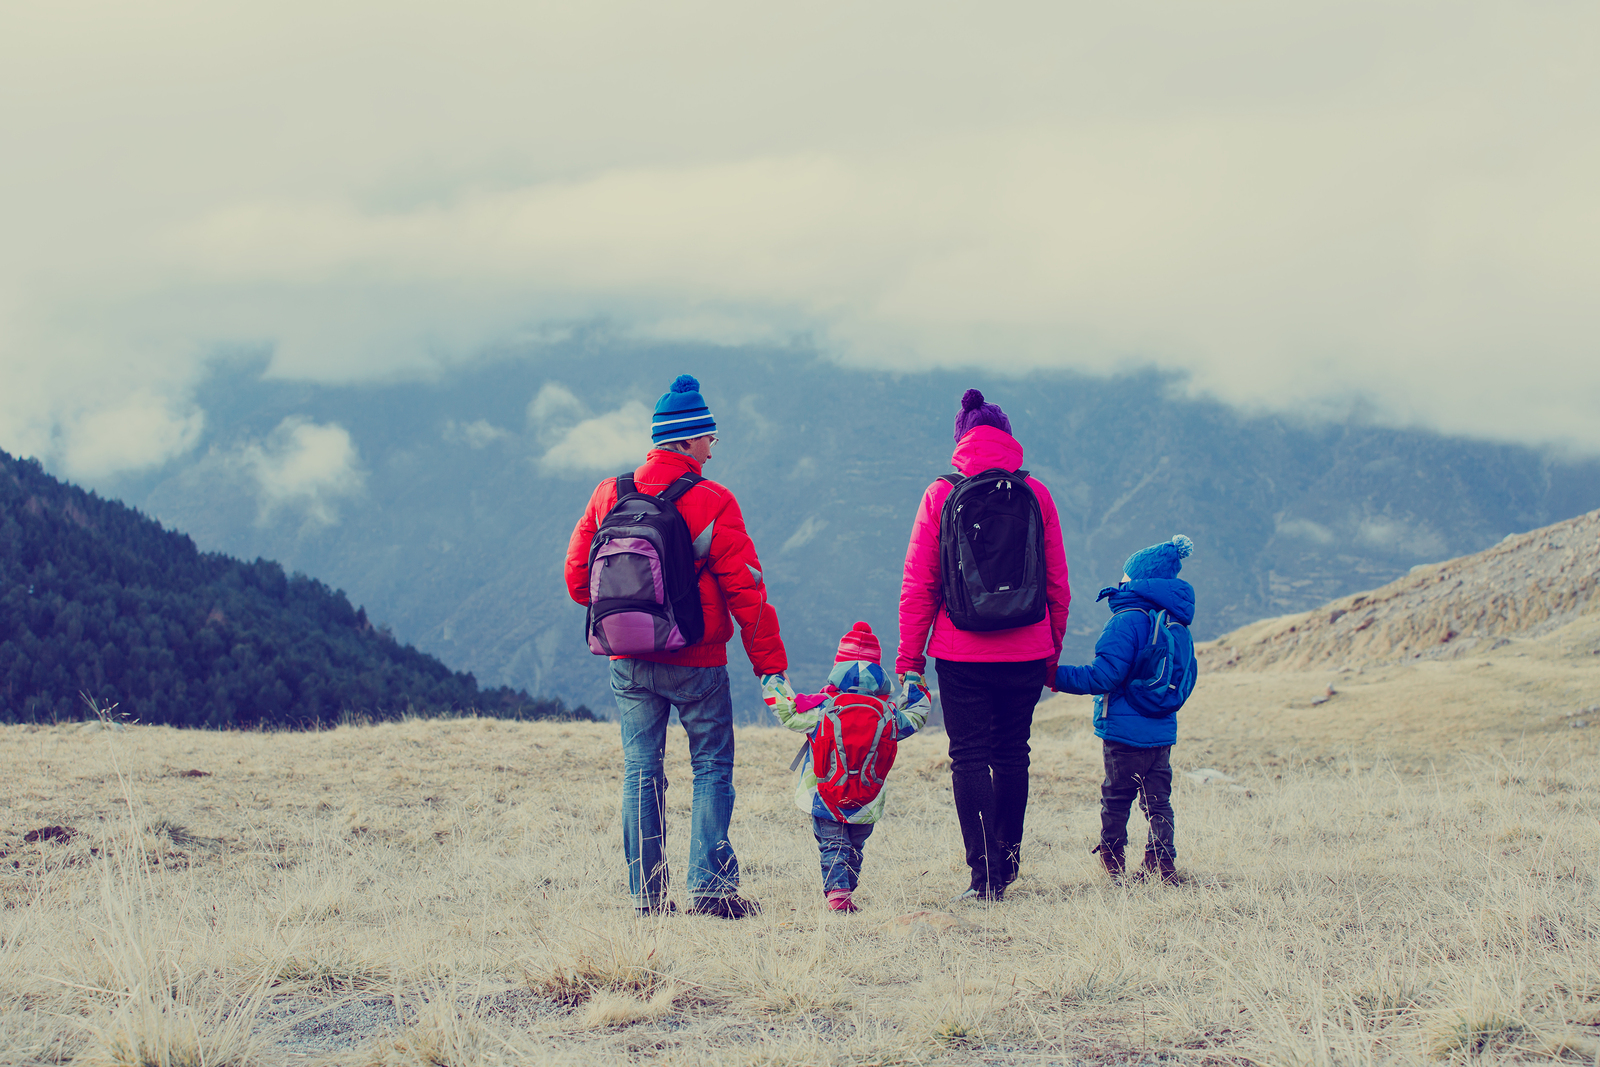 5 Tips to Build an Active Family Through Outdoor Adventures